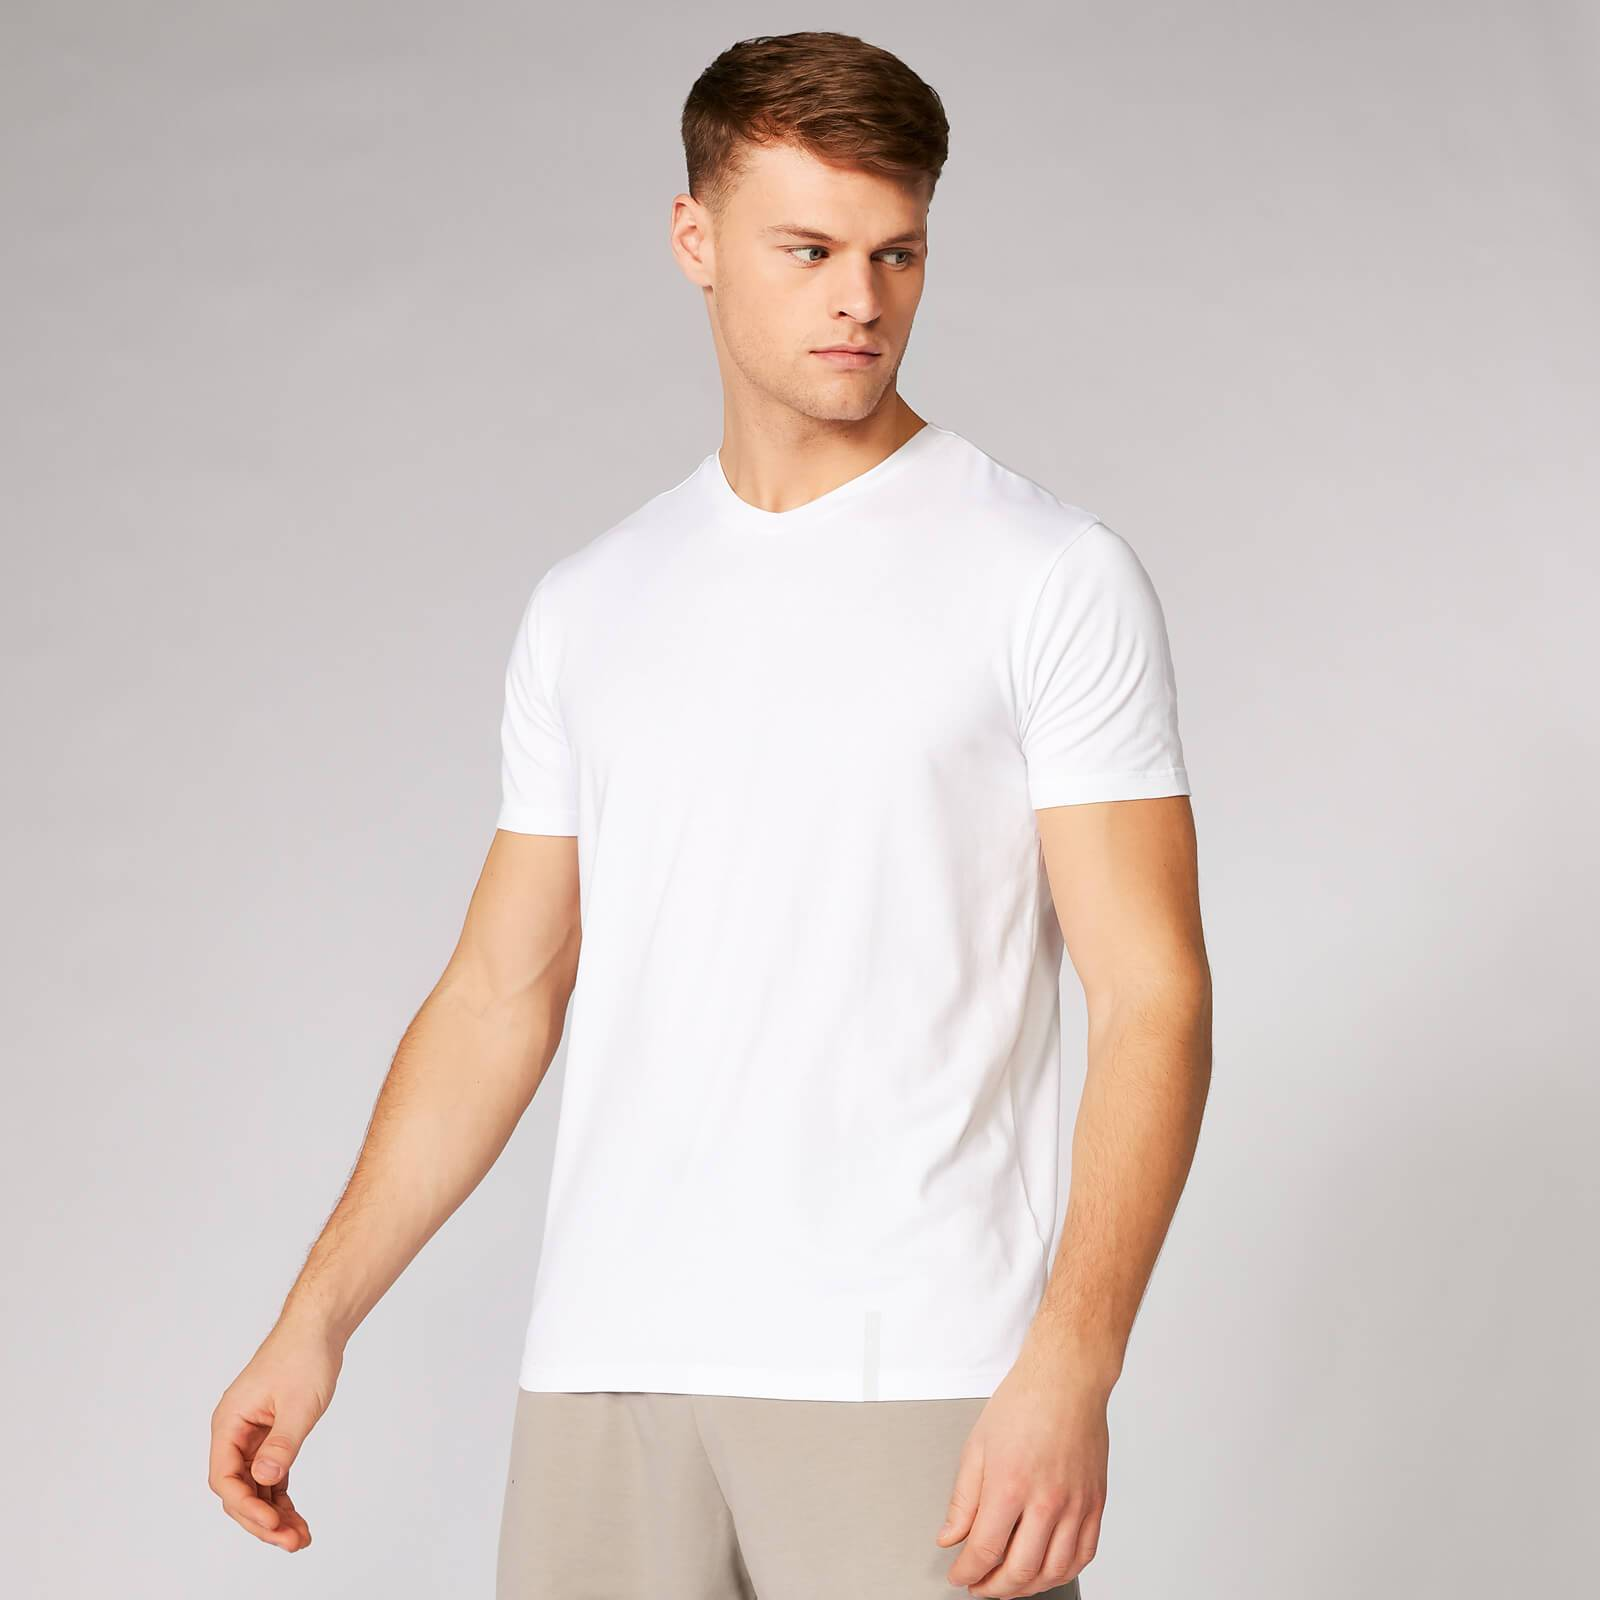 Myprotein Luxe Classic V-Neck T-Shirt - White - S